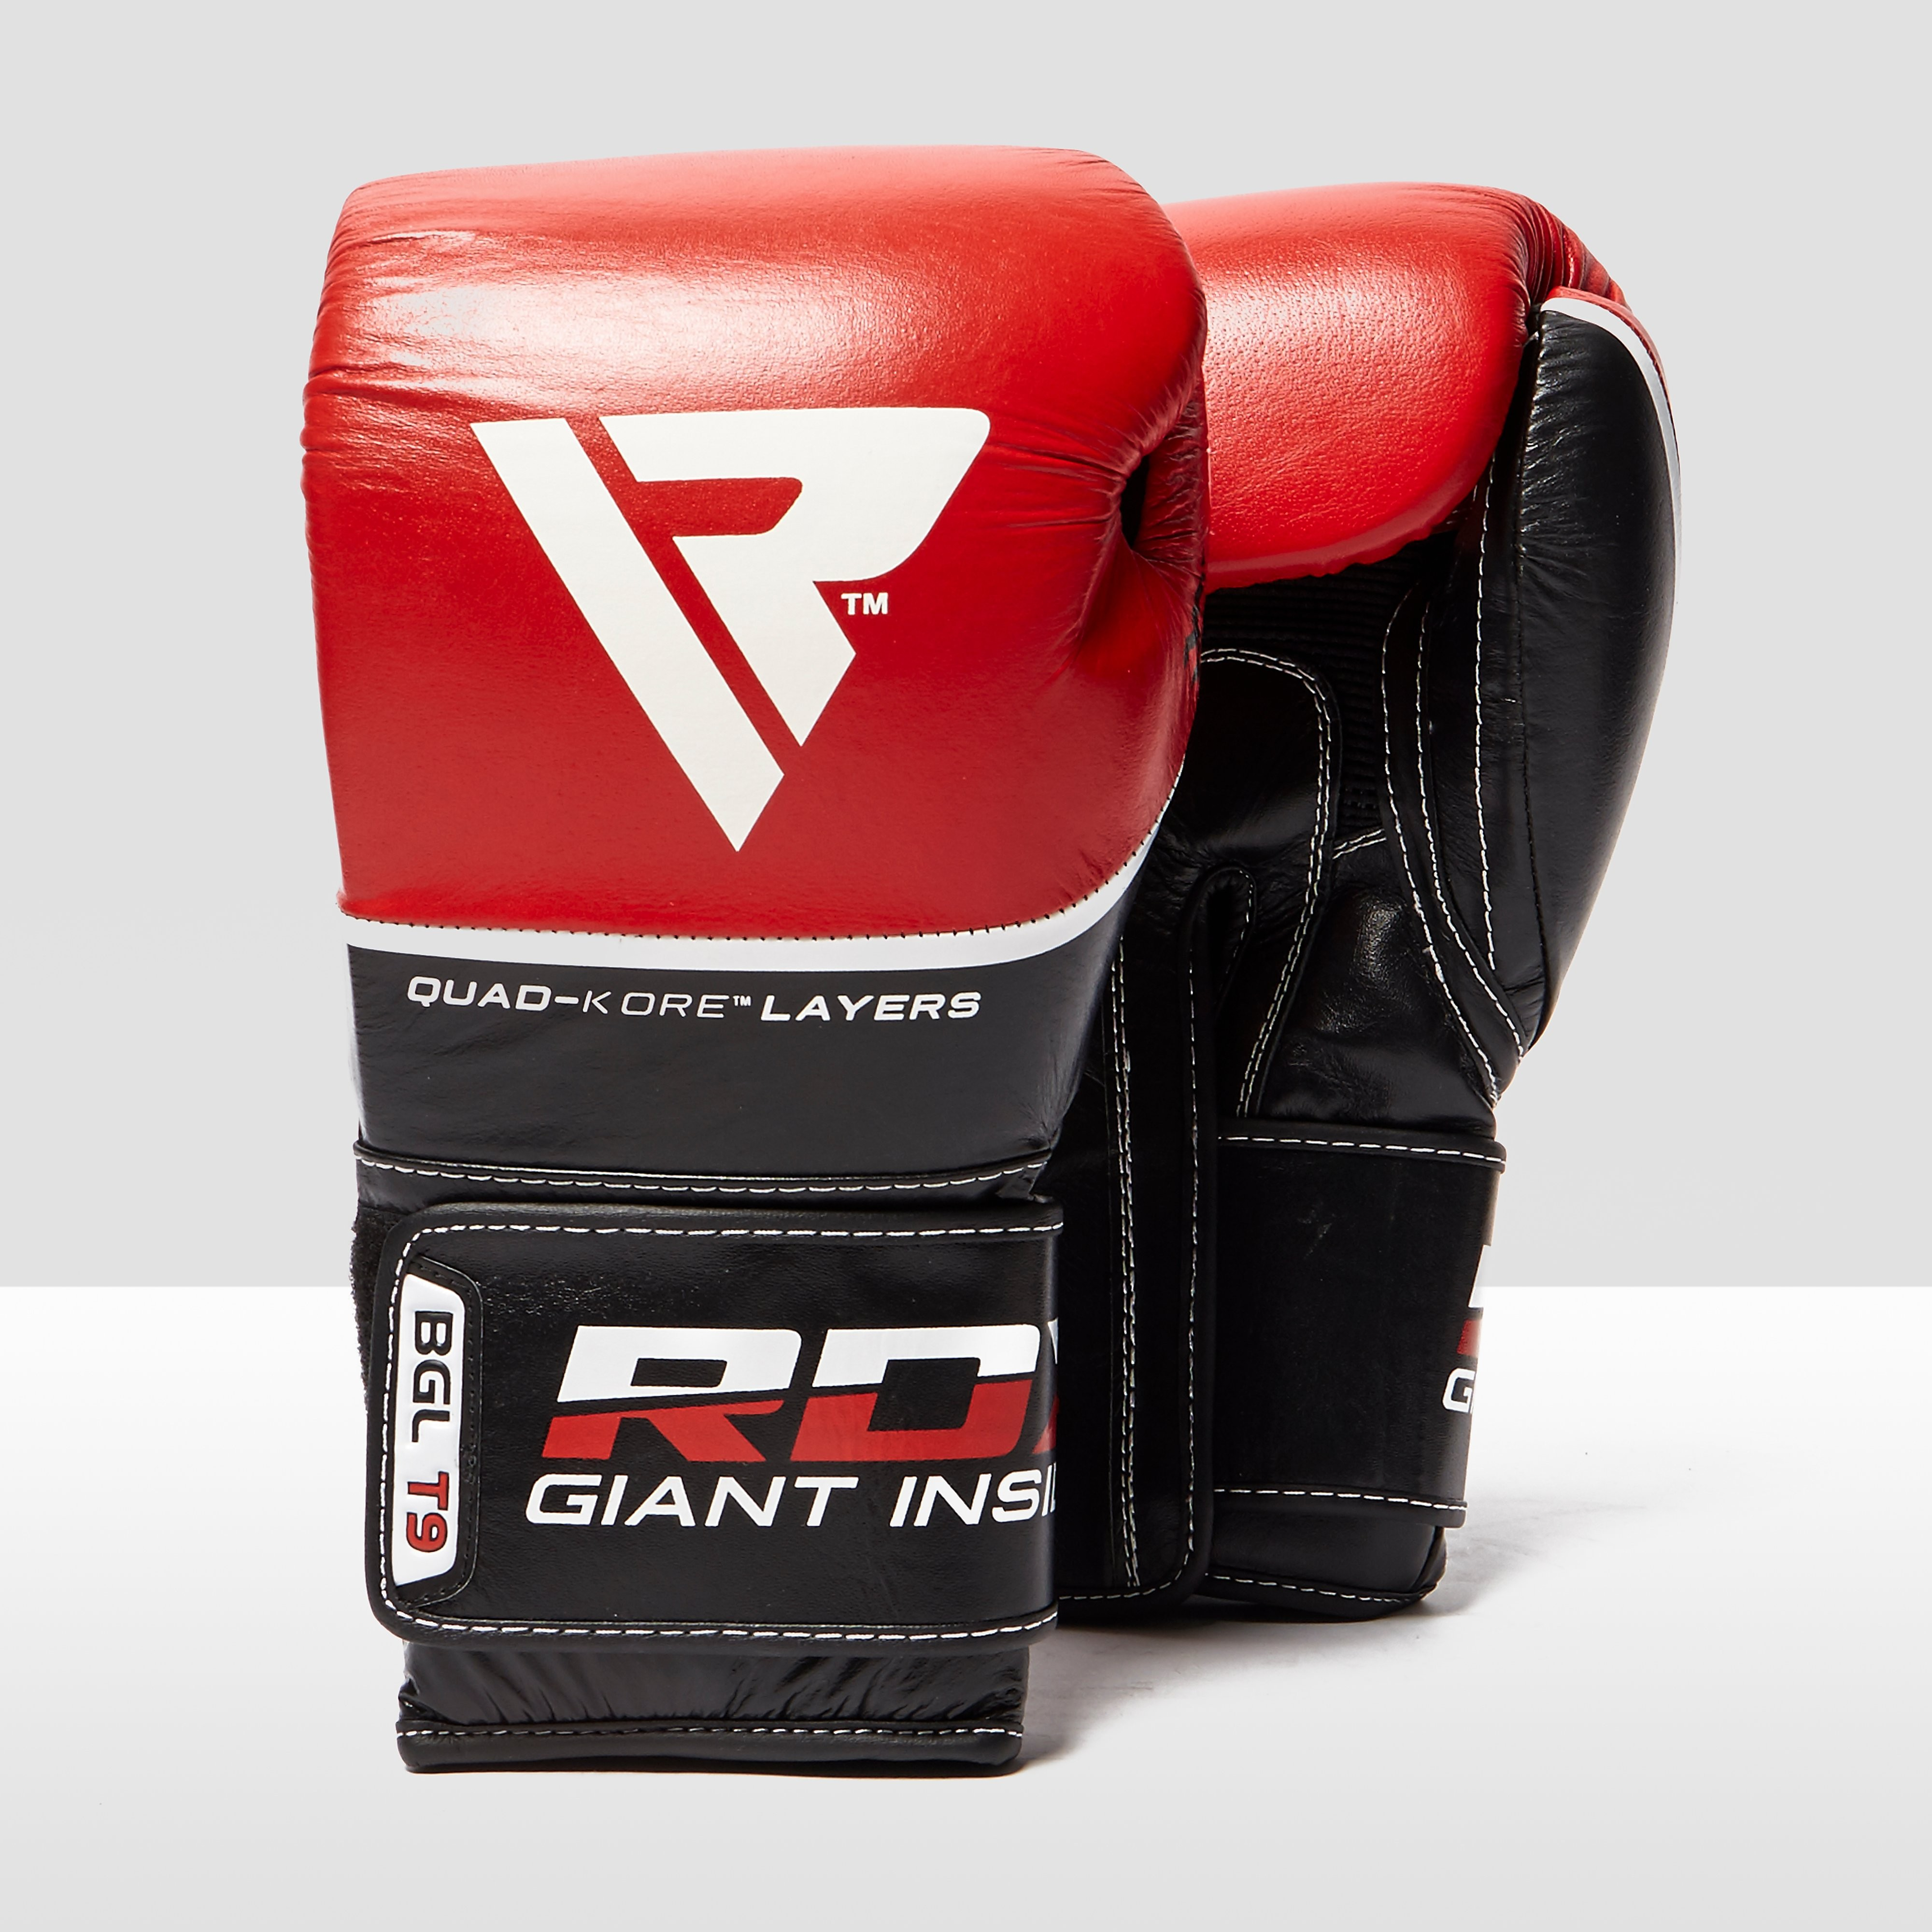 Rdx inc Quad-Kore Leather Training Gloves